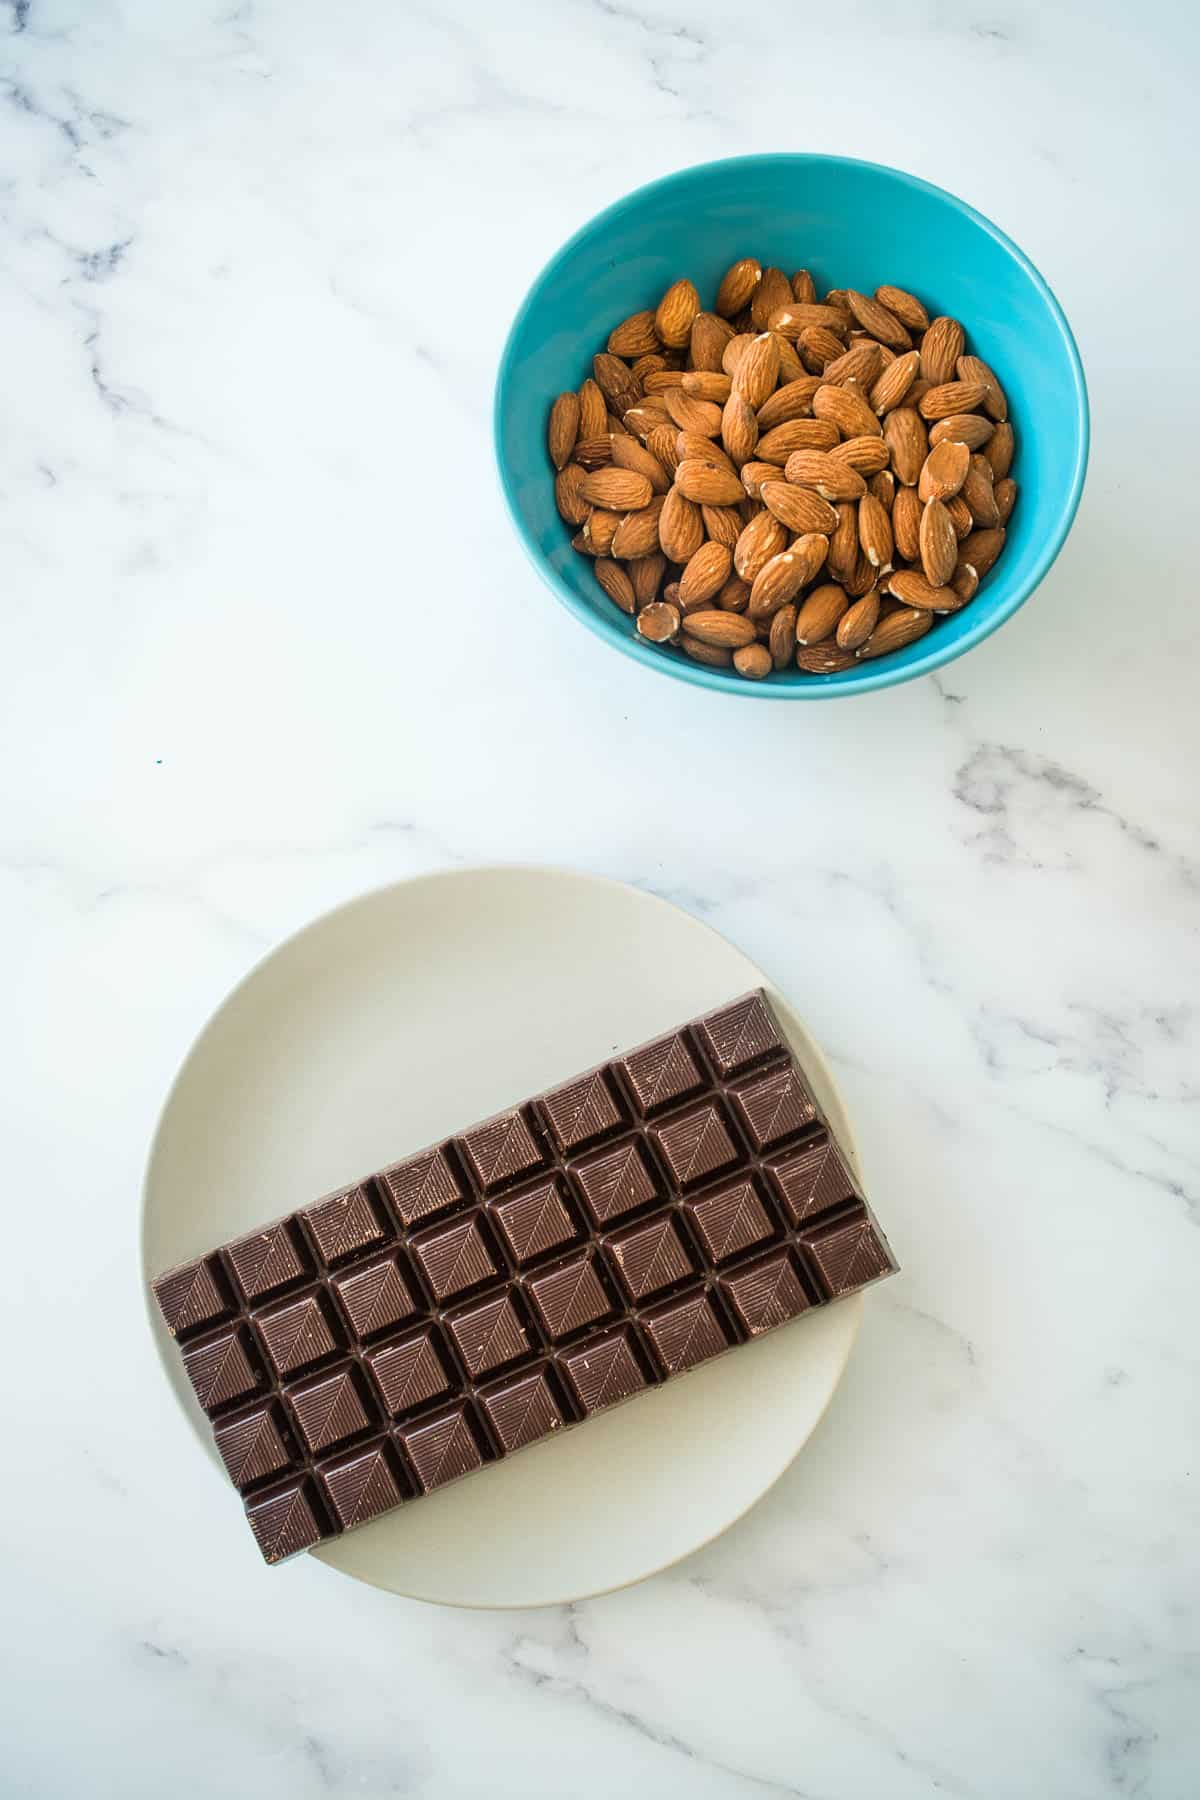 Chocolate and almonds on a table.